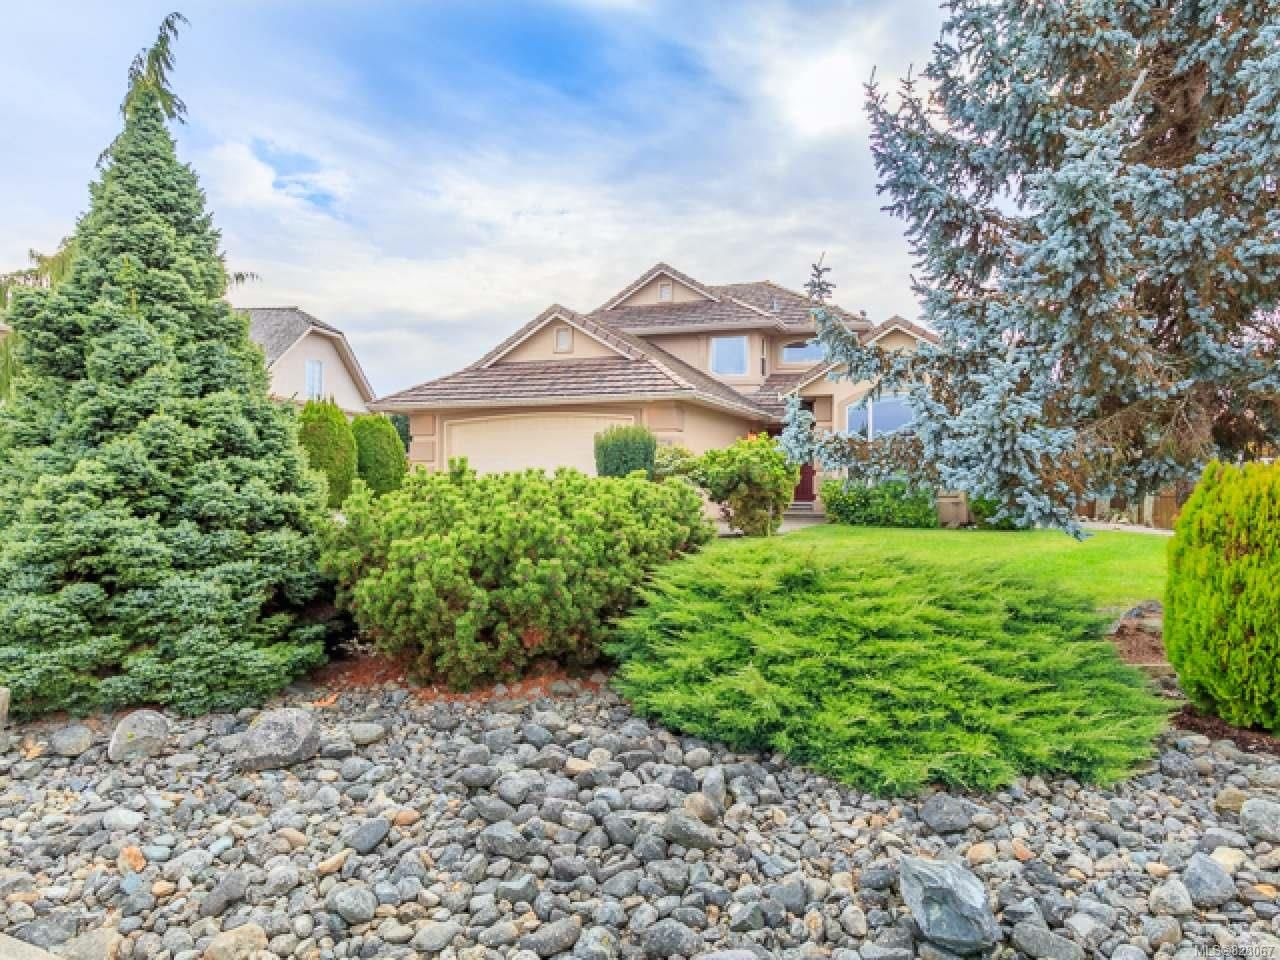 Main Photo: 1096 AERY VIEW Way in PARKSVILLE: PQ French Creek House for sale (Parksville/Qualicum)  : MLS®# 828067